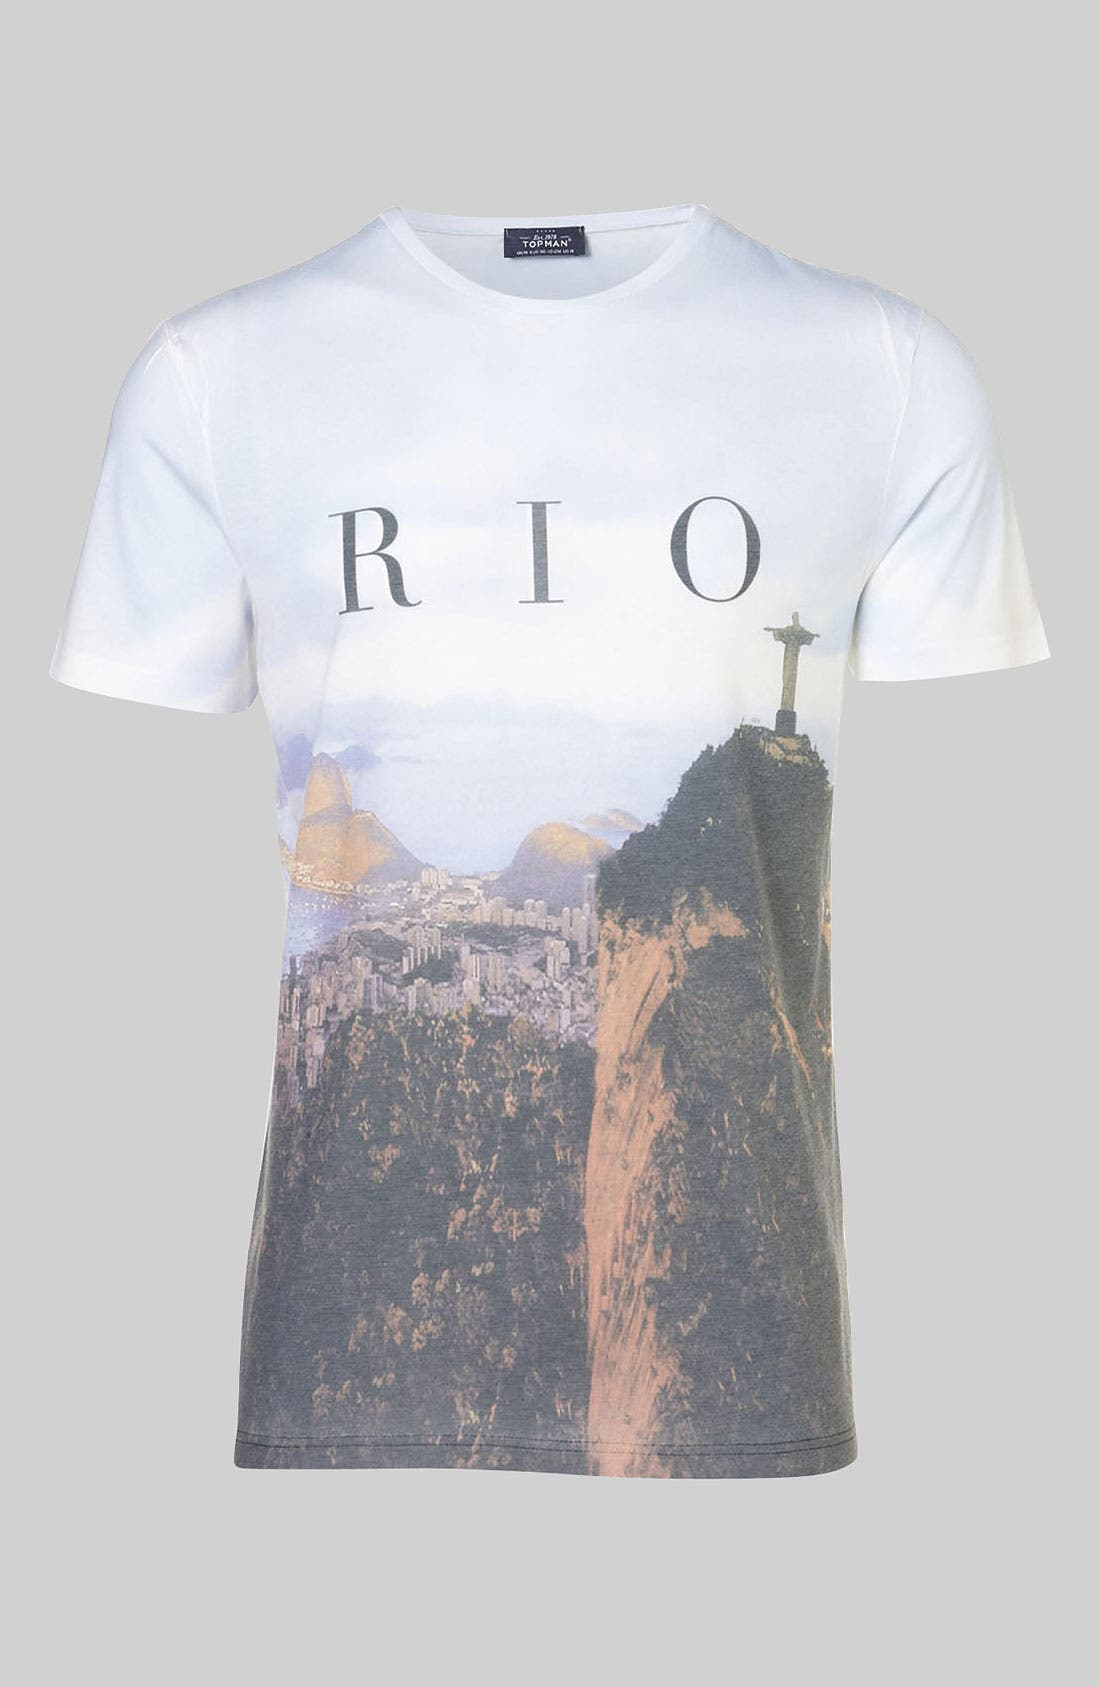 Alternate Image 1 Selected - Topman 'Rio Sublimation' Graphic T-Shirt